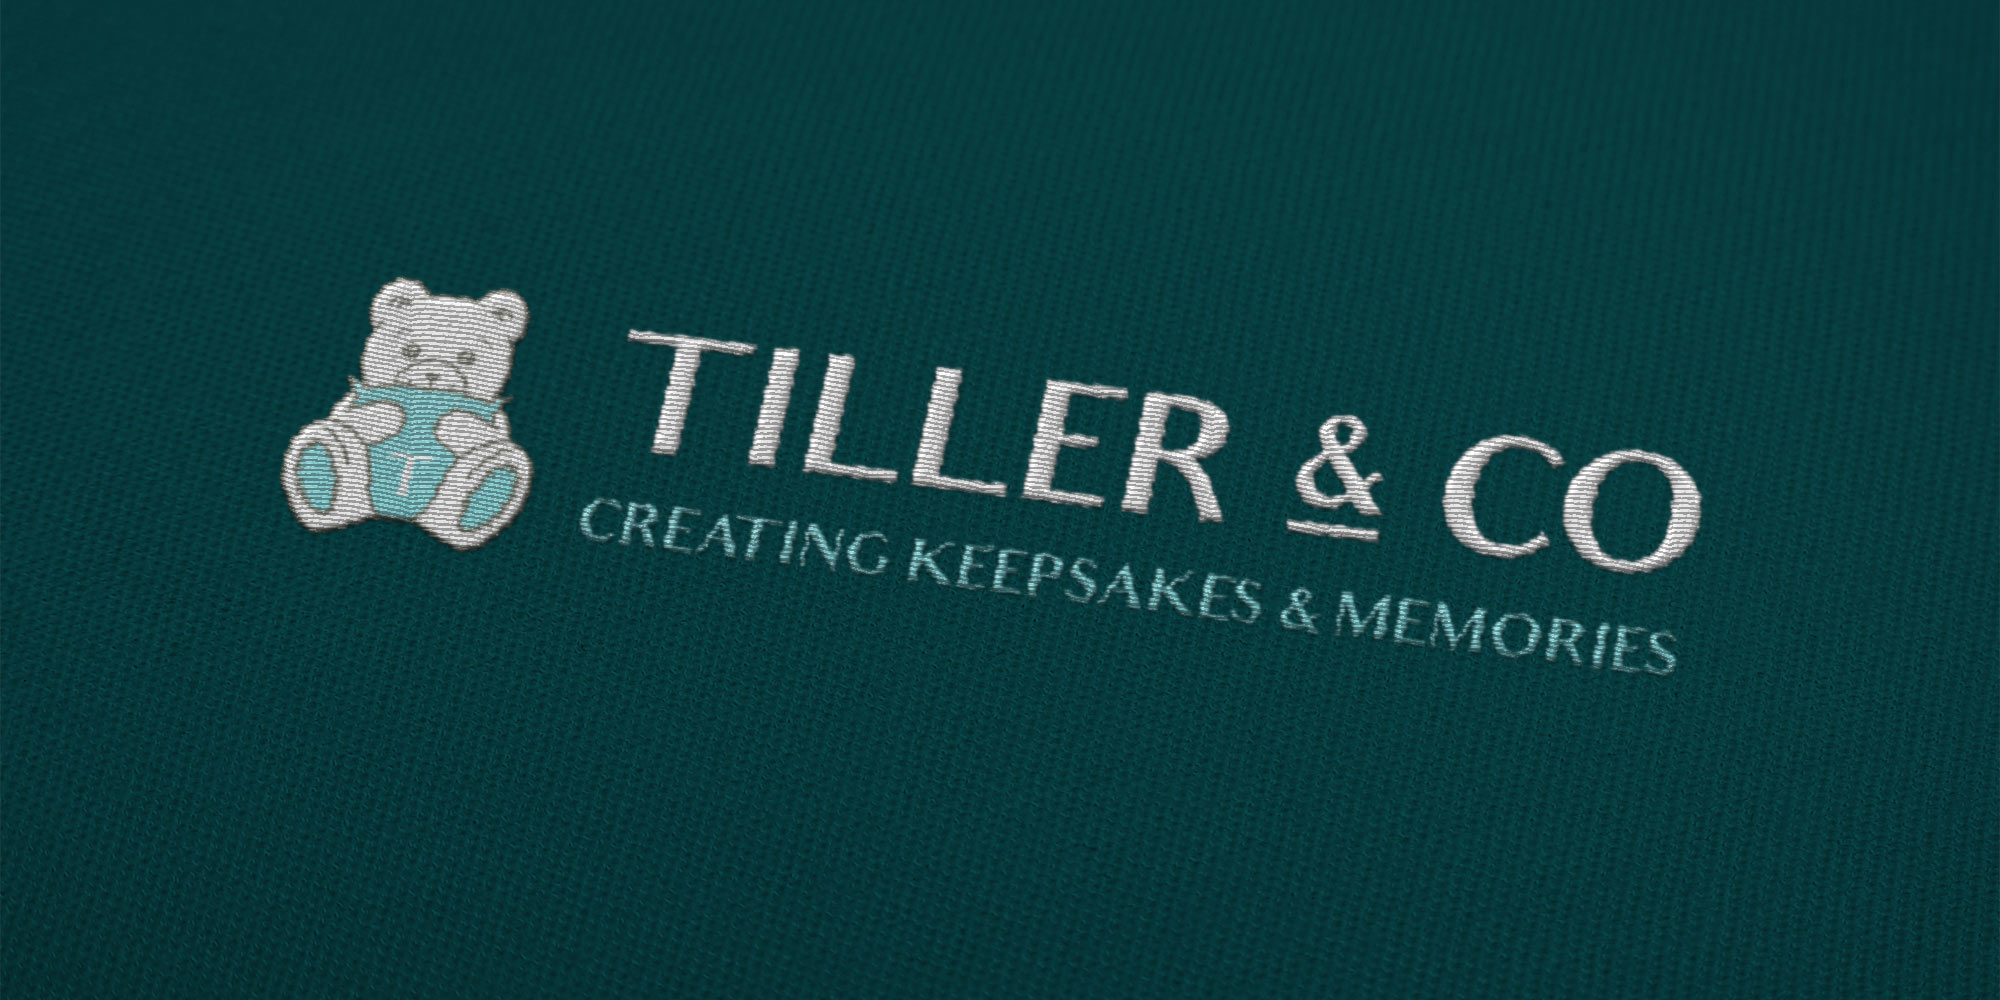 Tiller & Co Stitched Logo Design